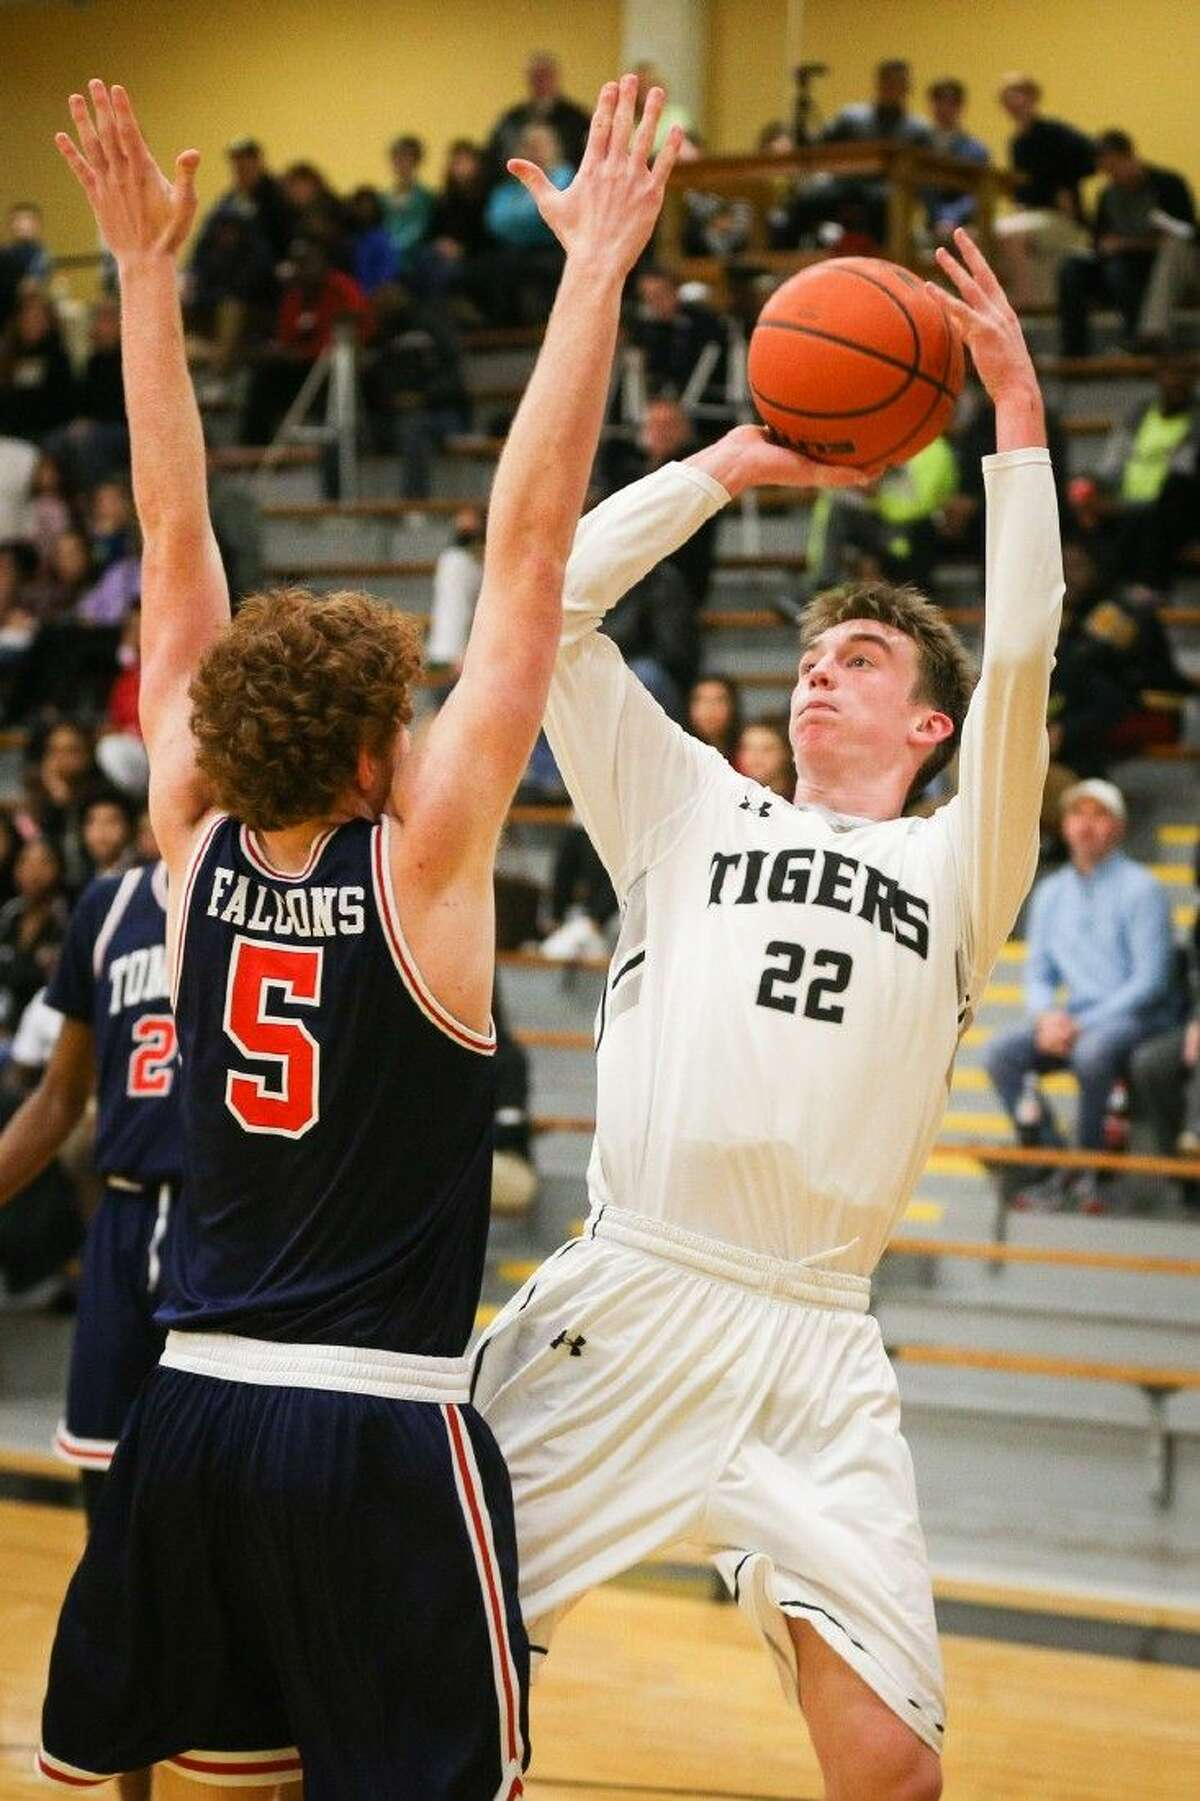 Conroe's Blaine Alger puts up an outside shot in the Tigers' 64-48 victory over Katy Tompkins. To view more photos from the game, go to HCNPics.com.